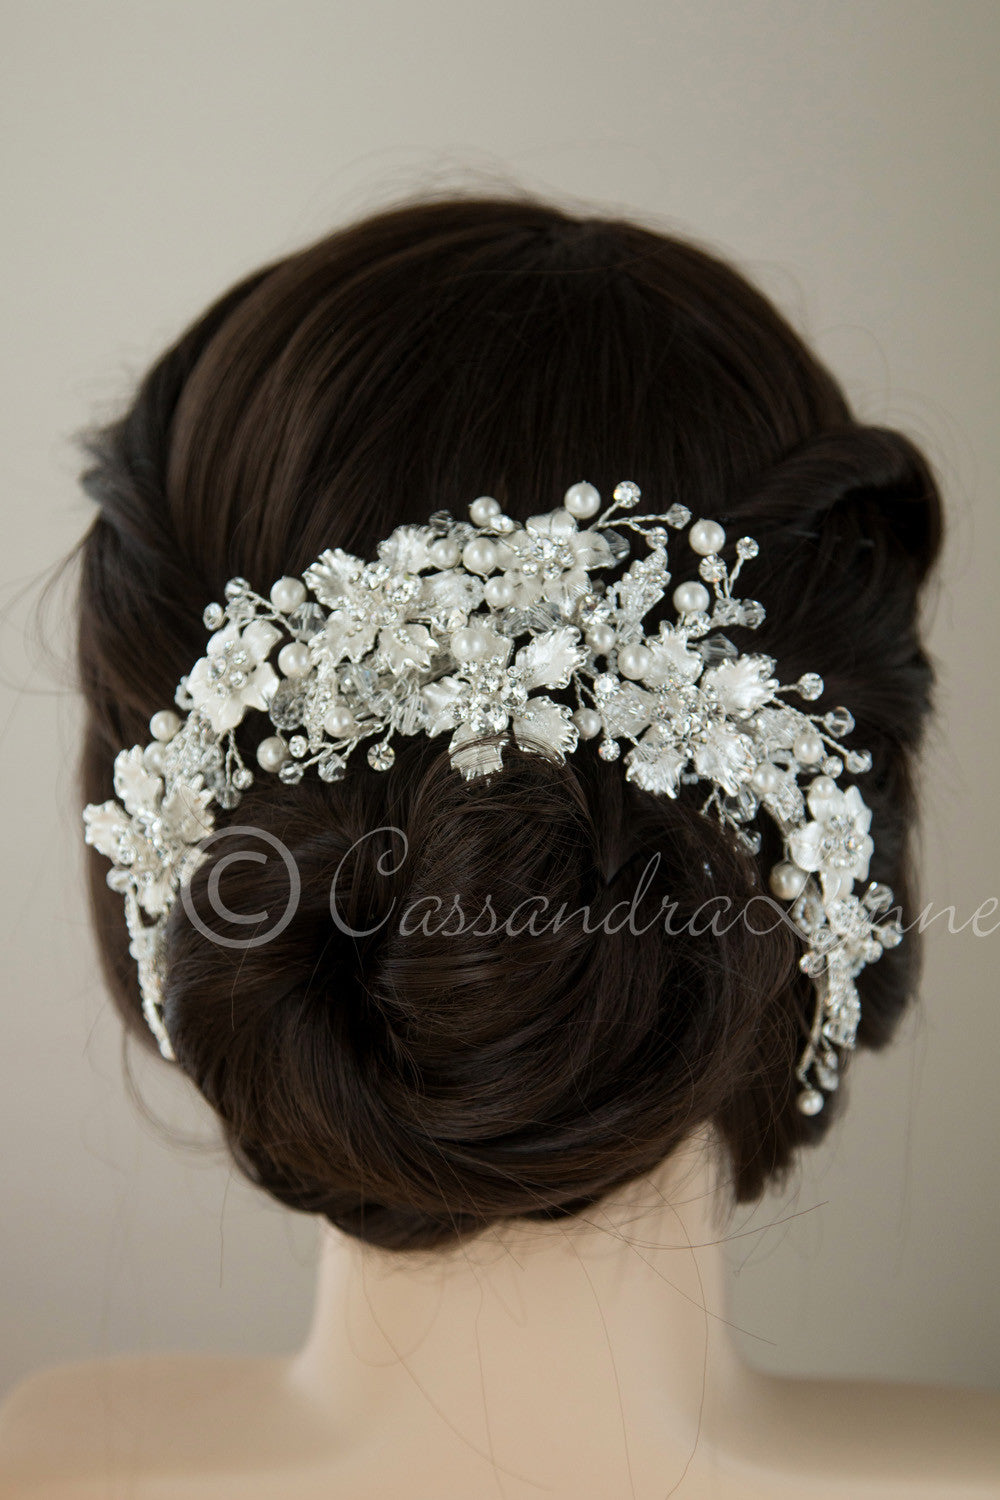 Bridal Headpiece with Silver Frosted Flowers Pearls and Crystals model